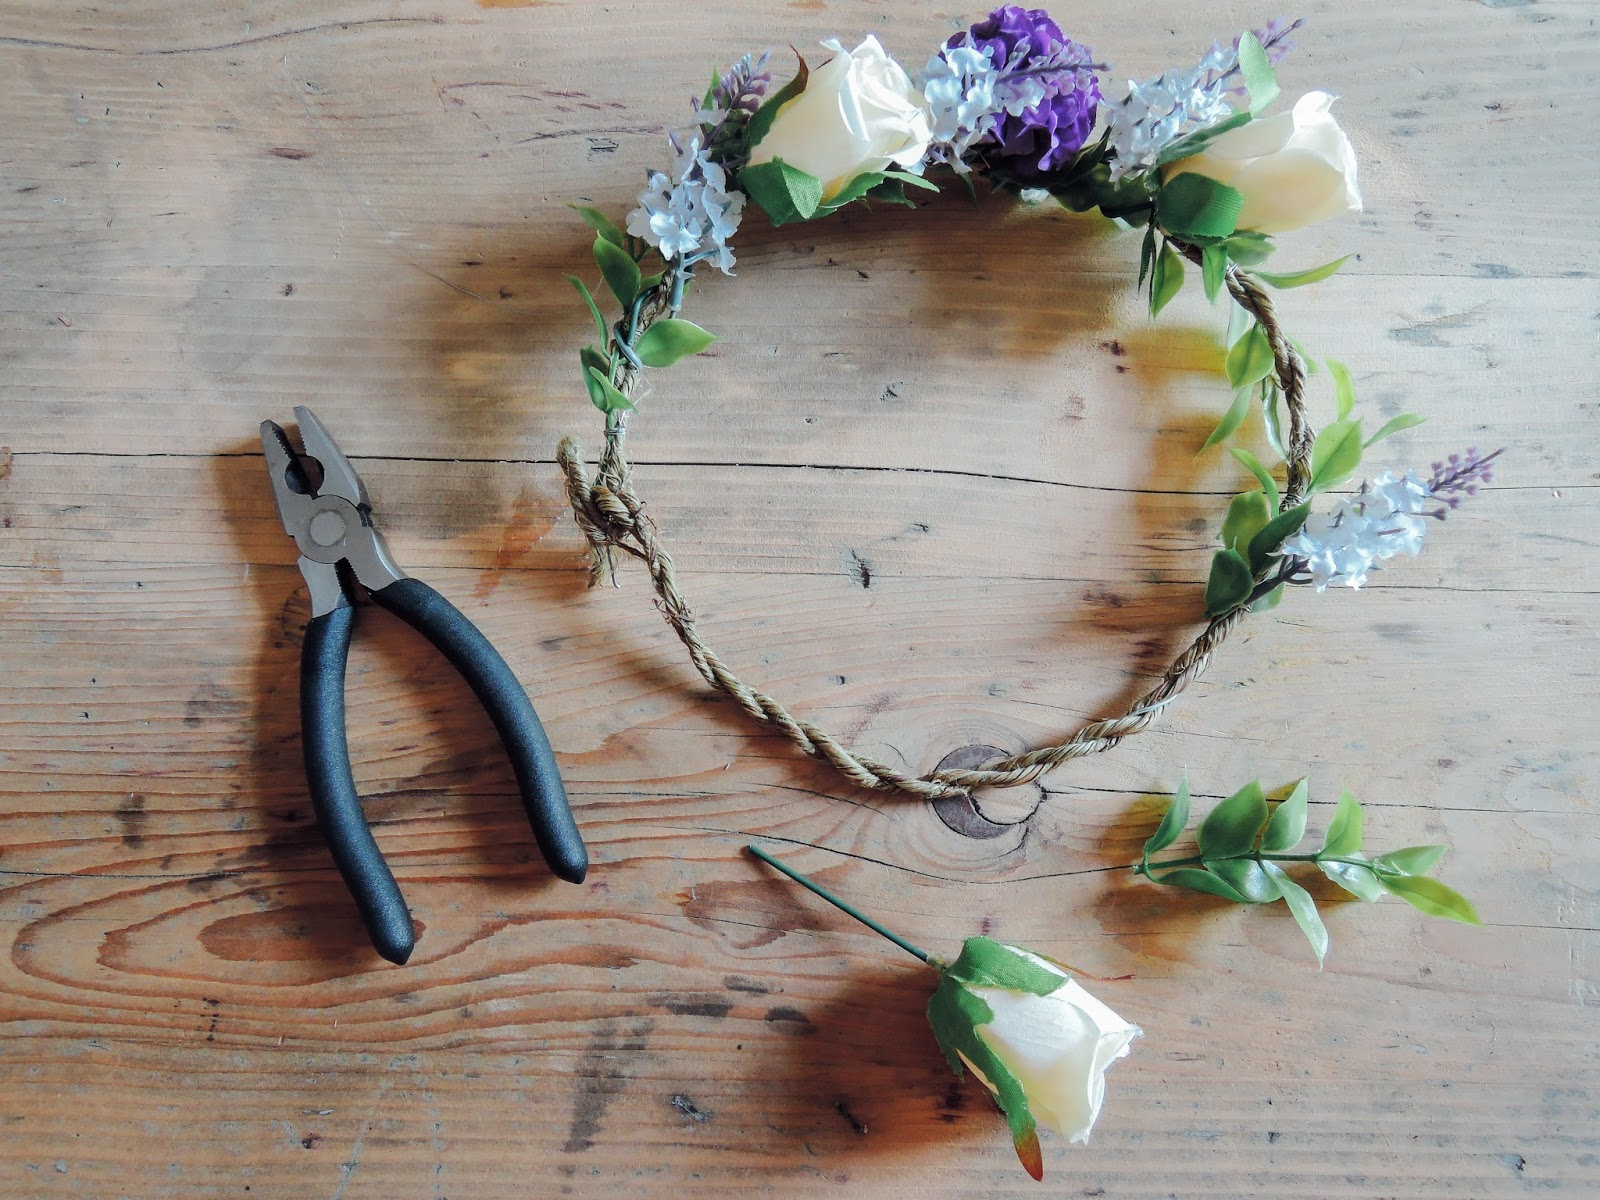 A handmade cottage how to make a flower crown for weddings diy flower crown izmirmasajfo Image collections